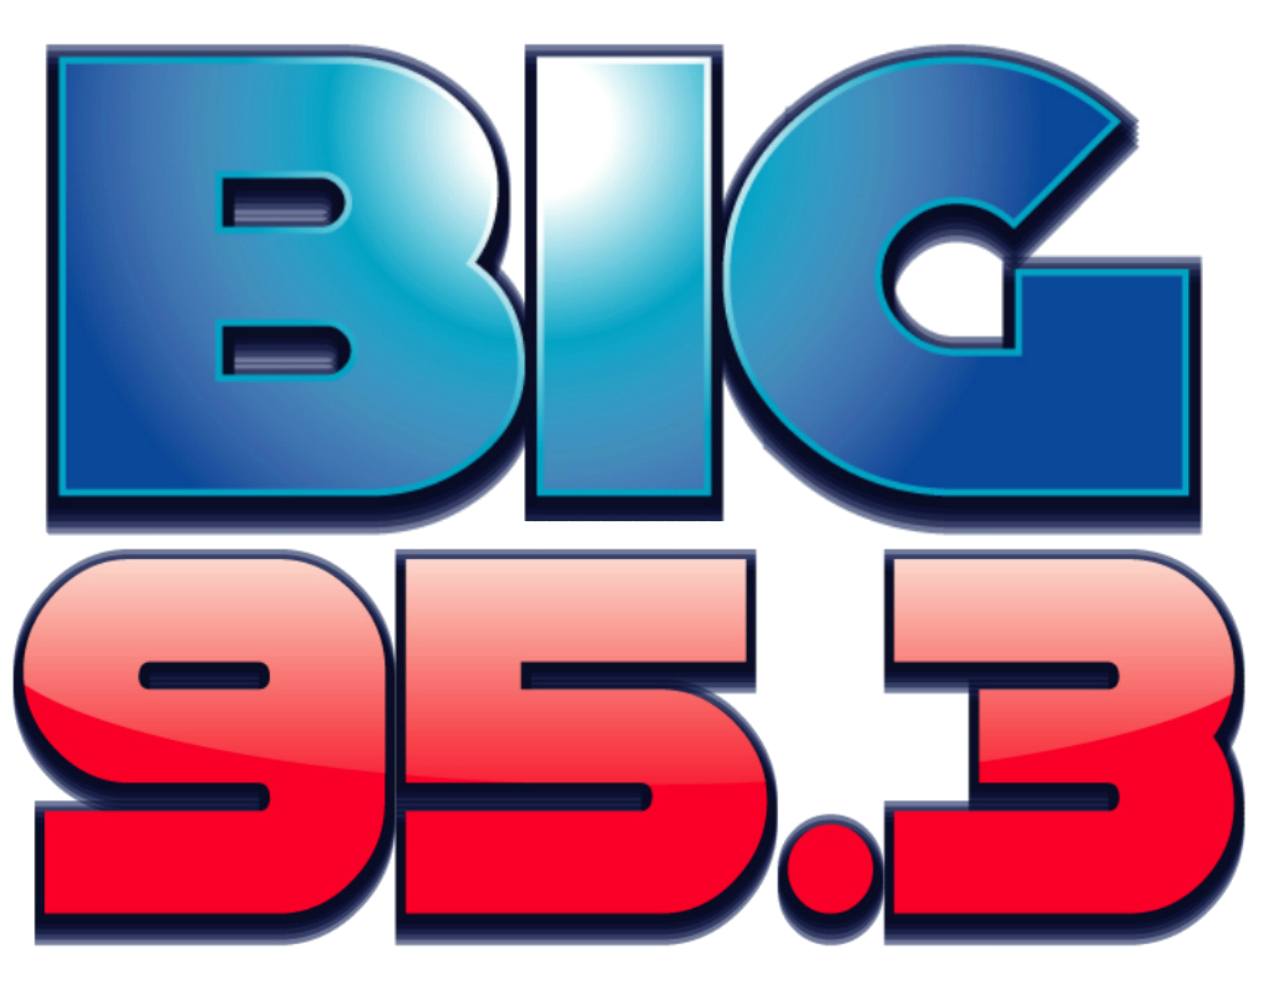 BIG LOGO B (STACKED) CLEAR BACKGROUND[2].png